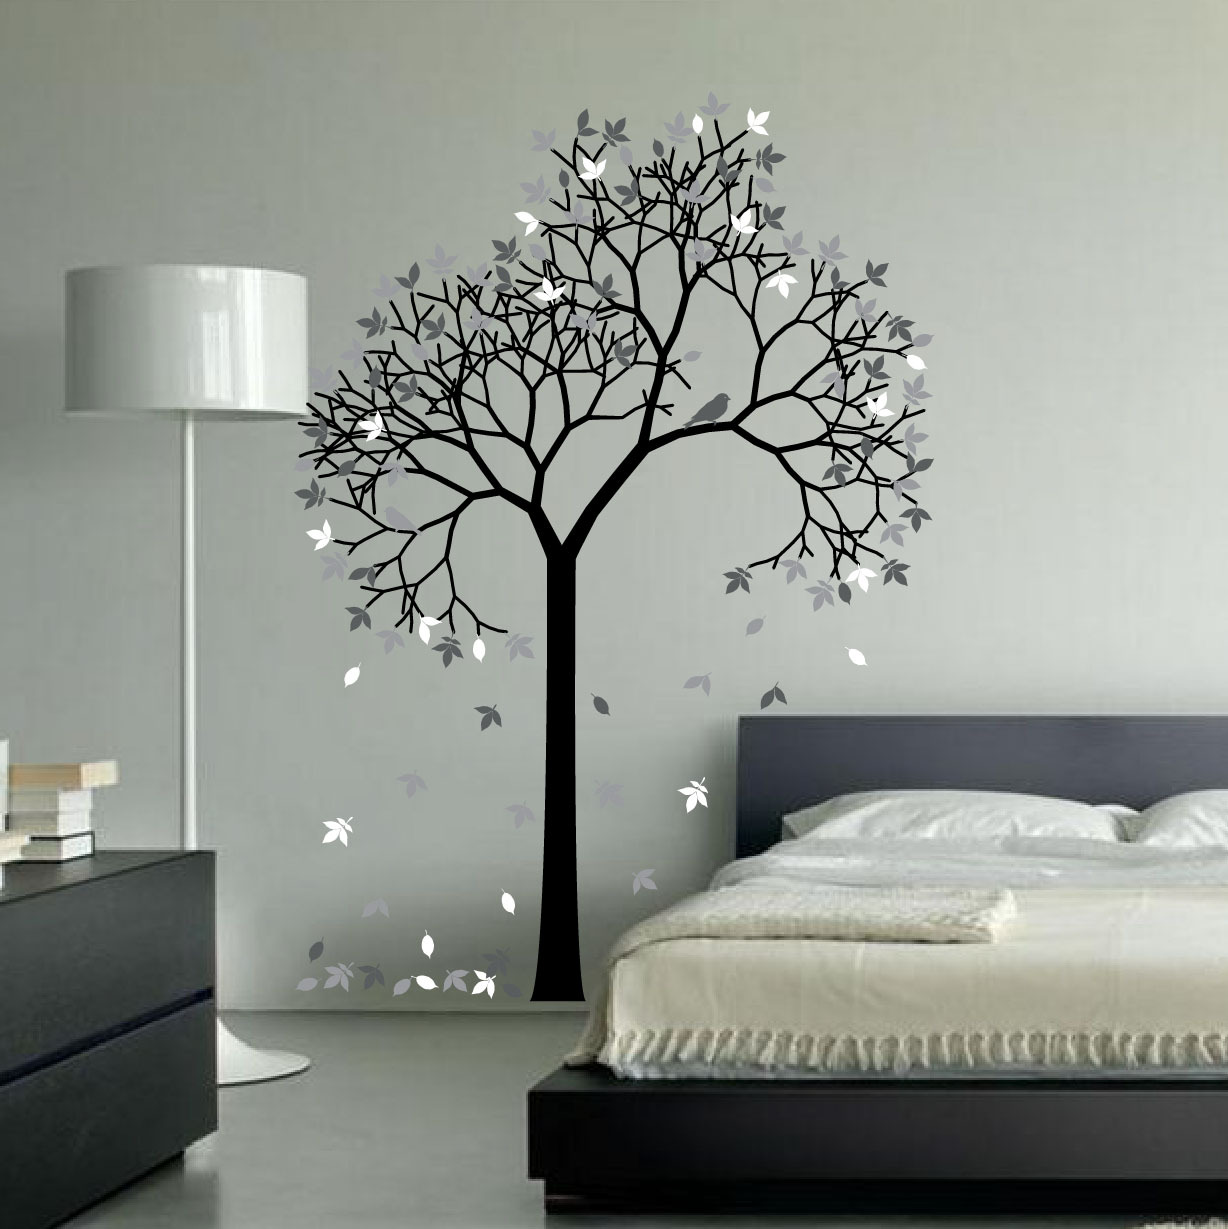 Aspen Tree Wall Decal Sticker Vinyl Nursert Art Leaves And